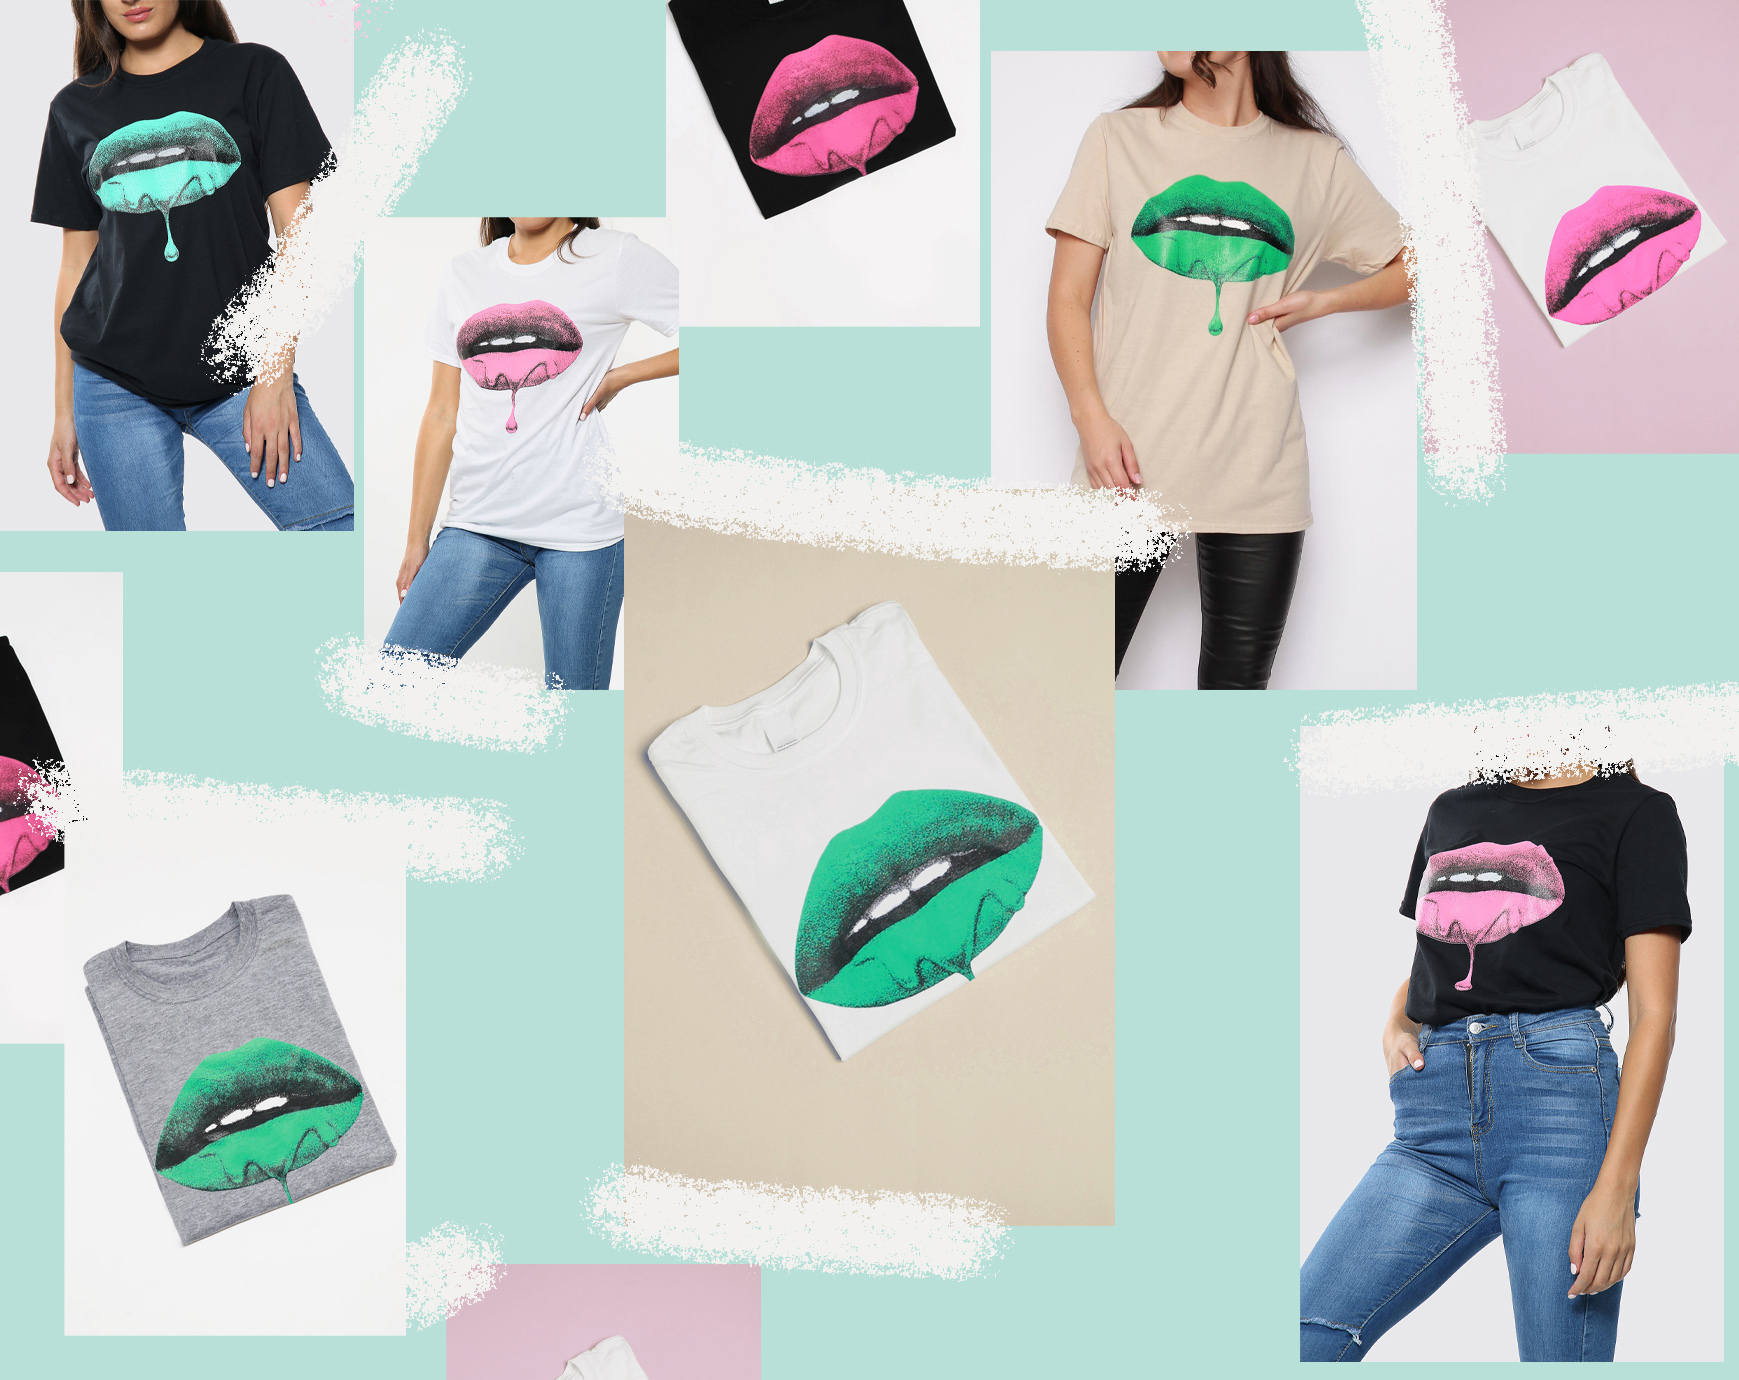 Lips Printed in green and pink on Oversized T Shirts